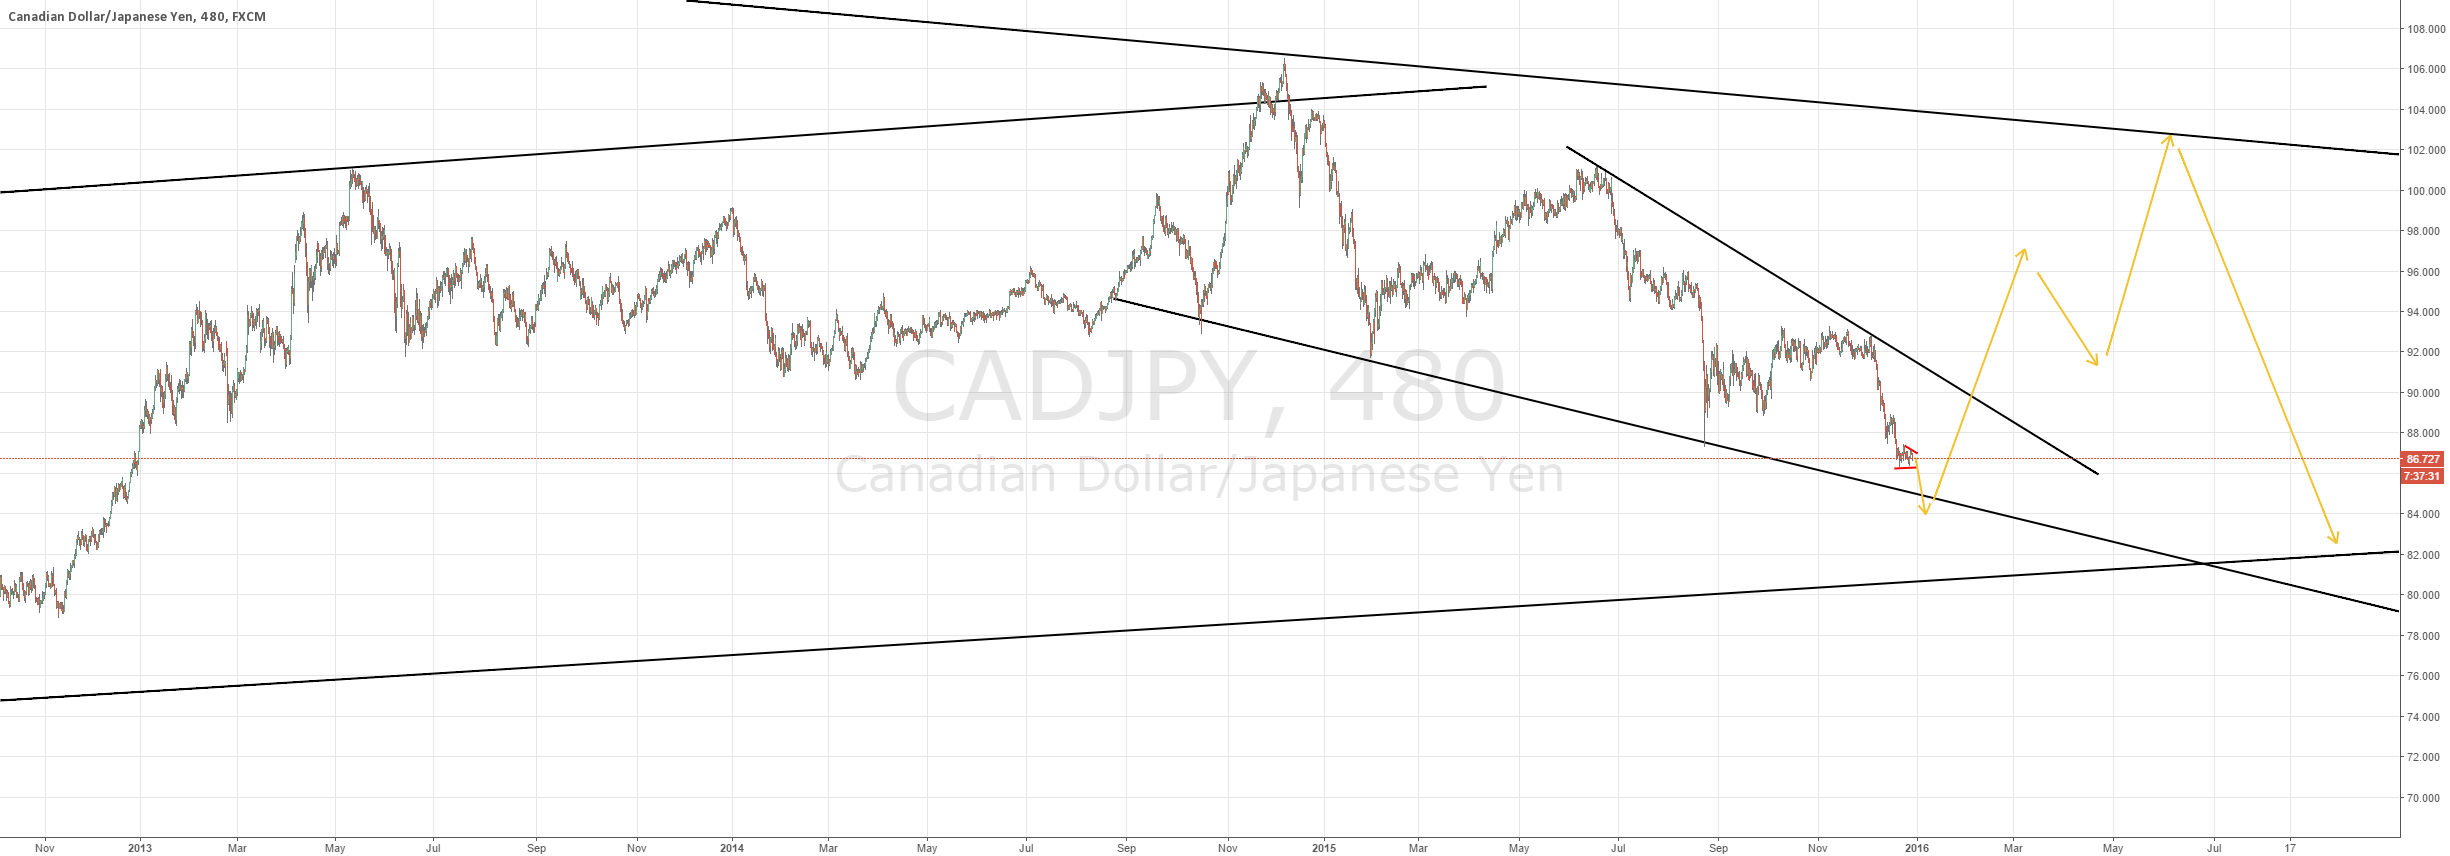 CADJPY could be the trade of 2016?